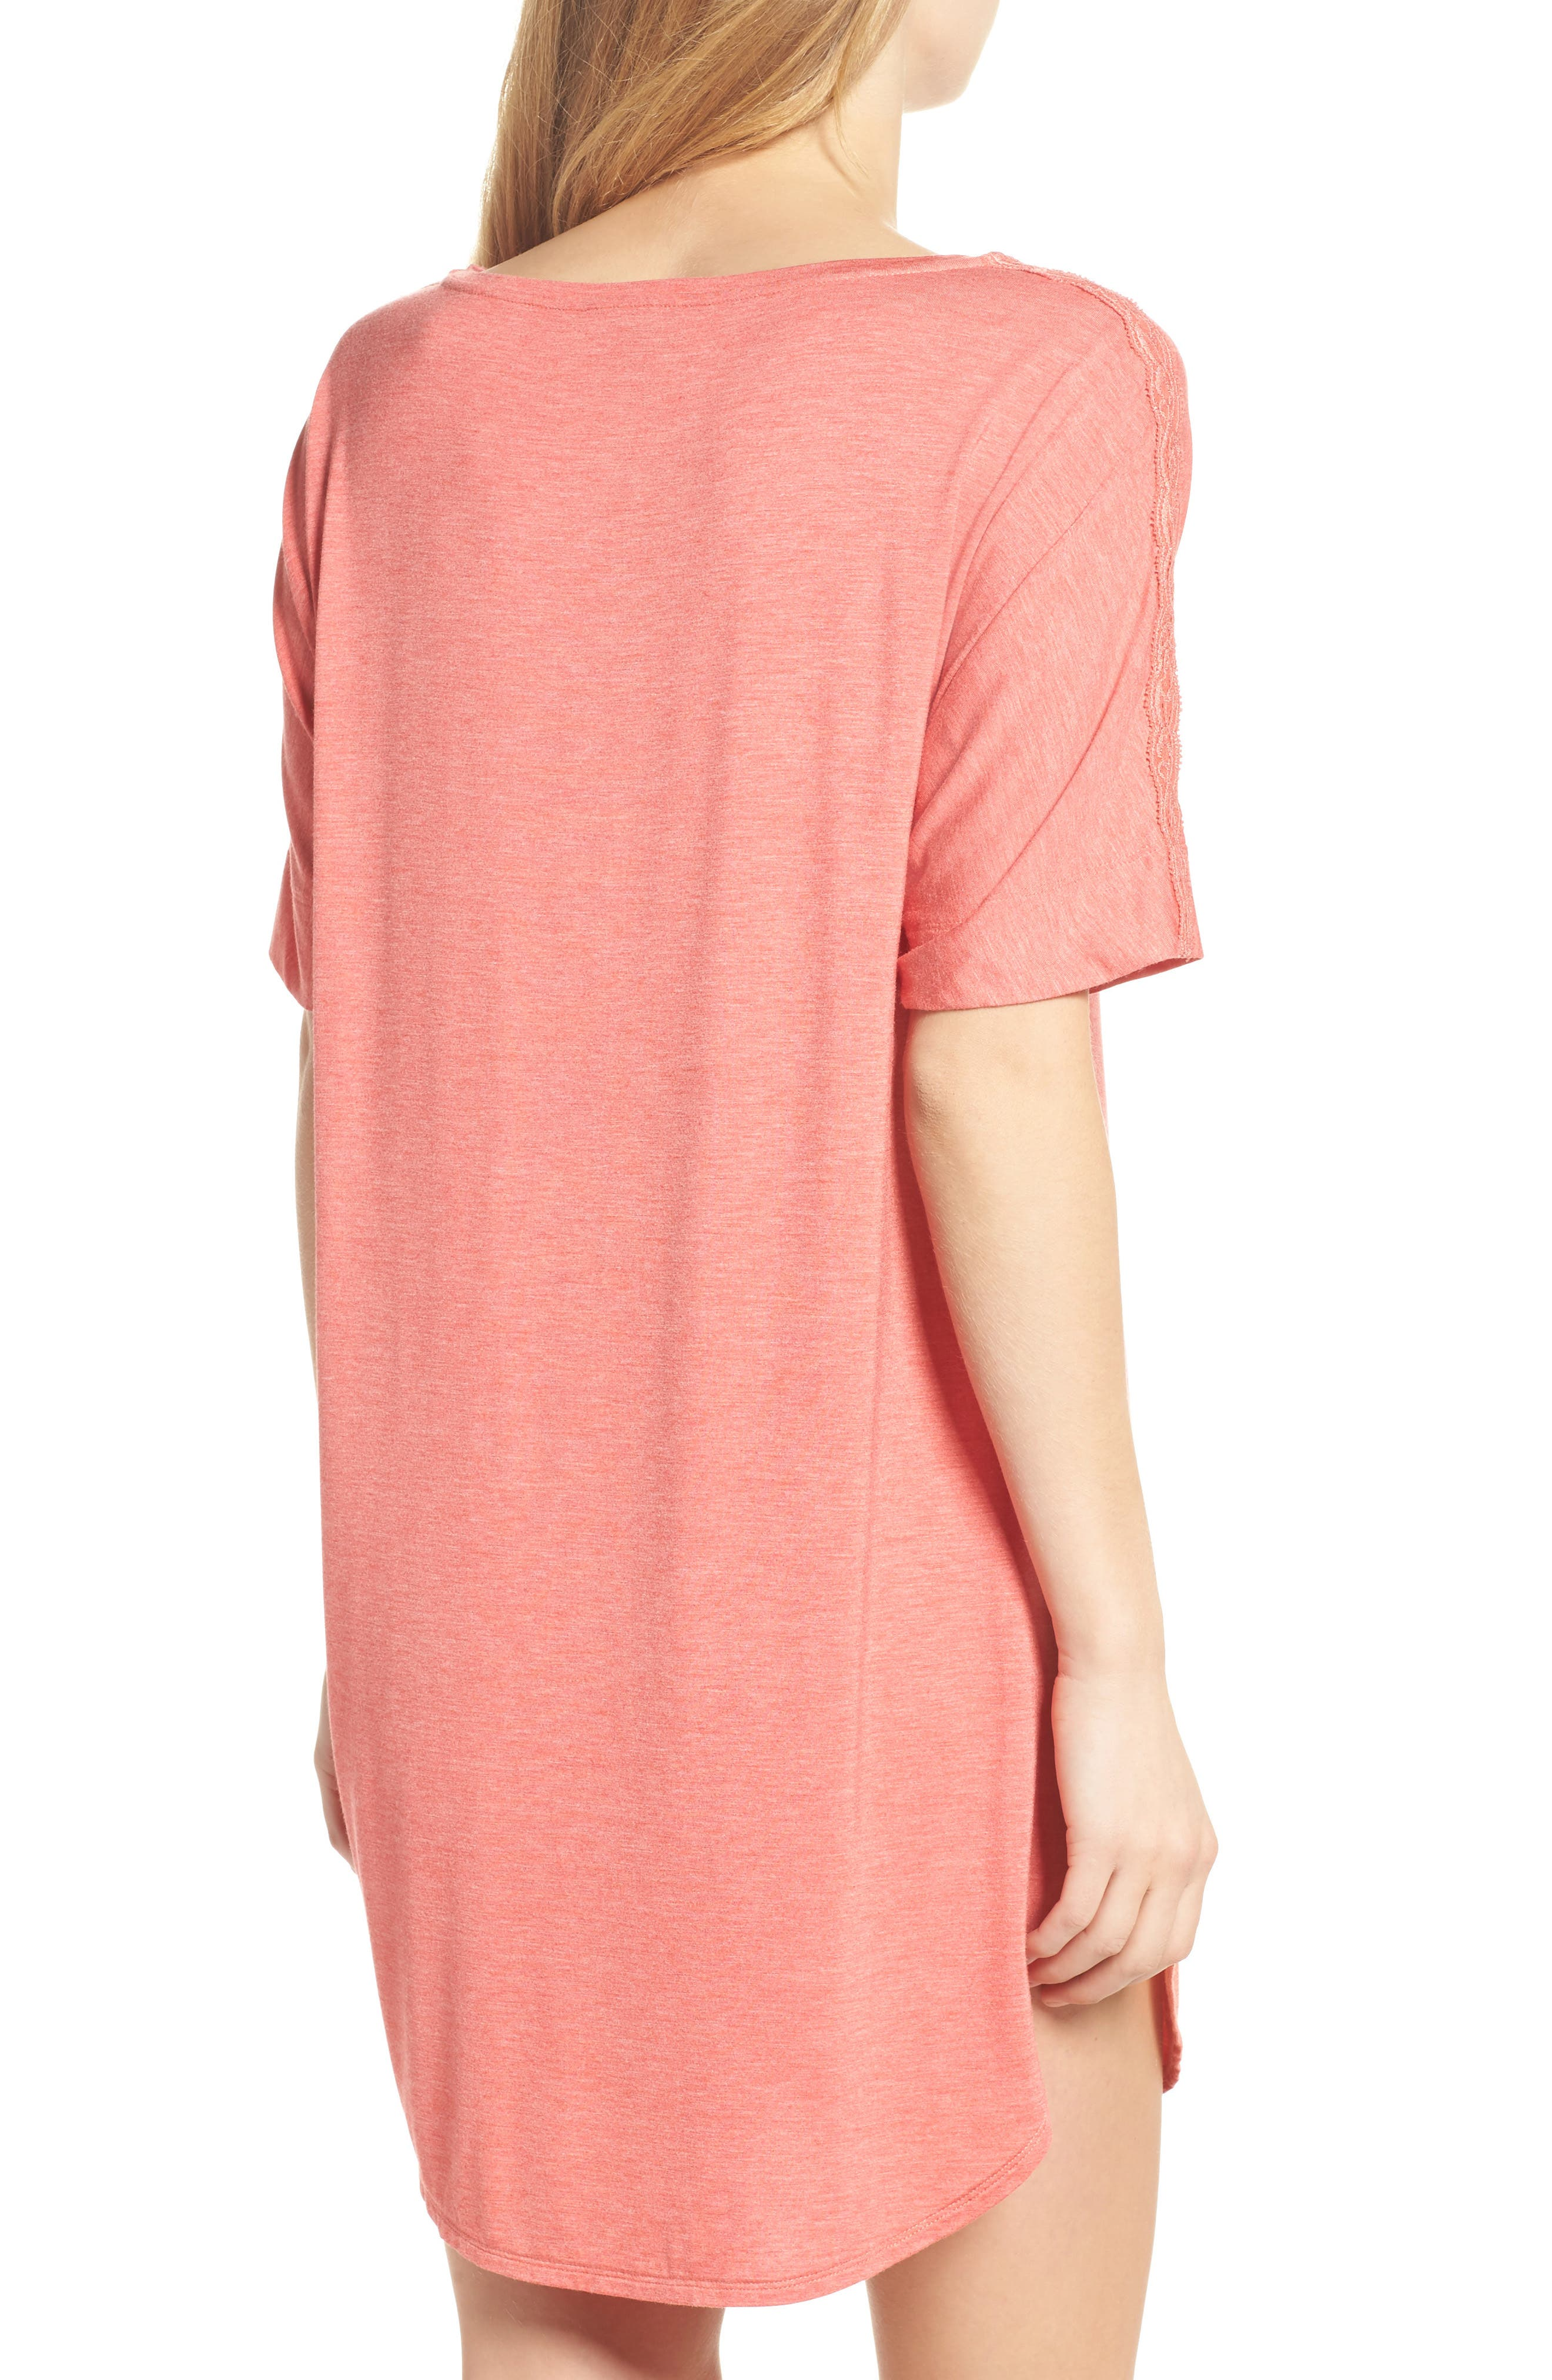 Feathers Essential Sleep Shirt,                             Alternate thumbnail 4, color,